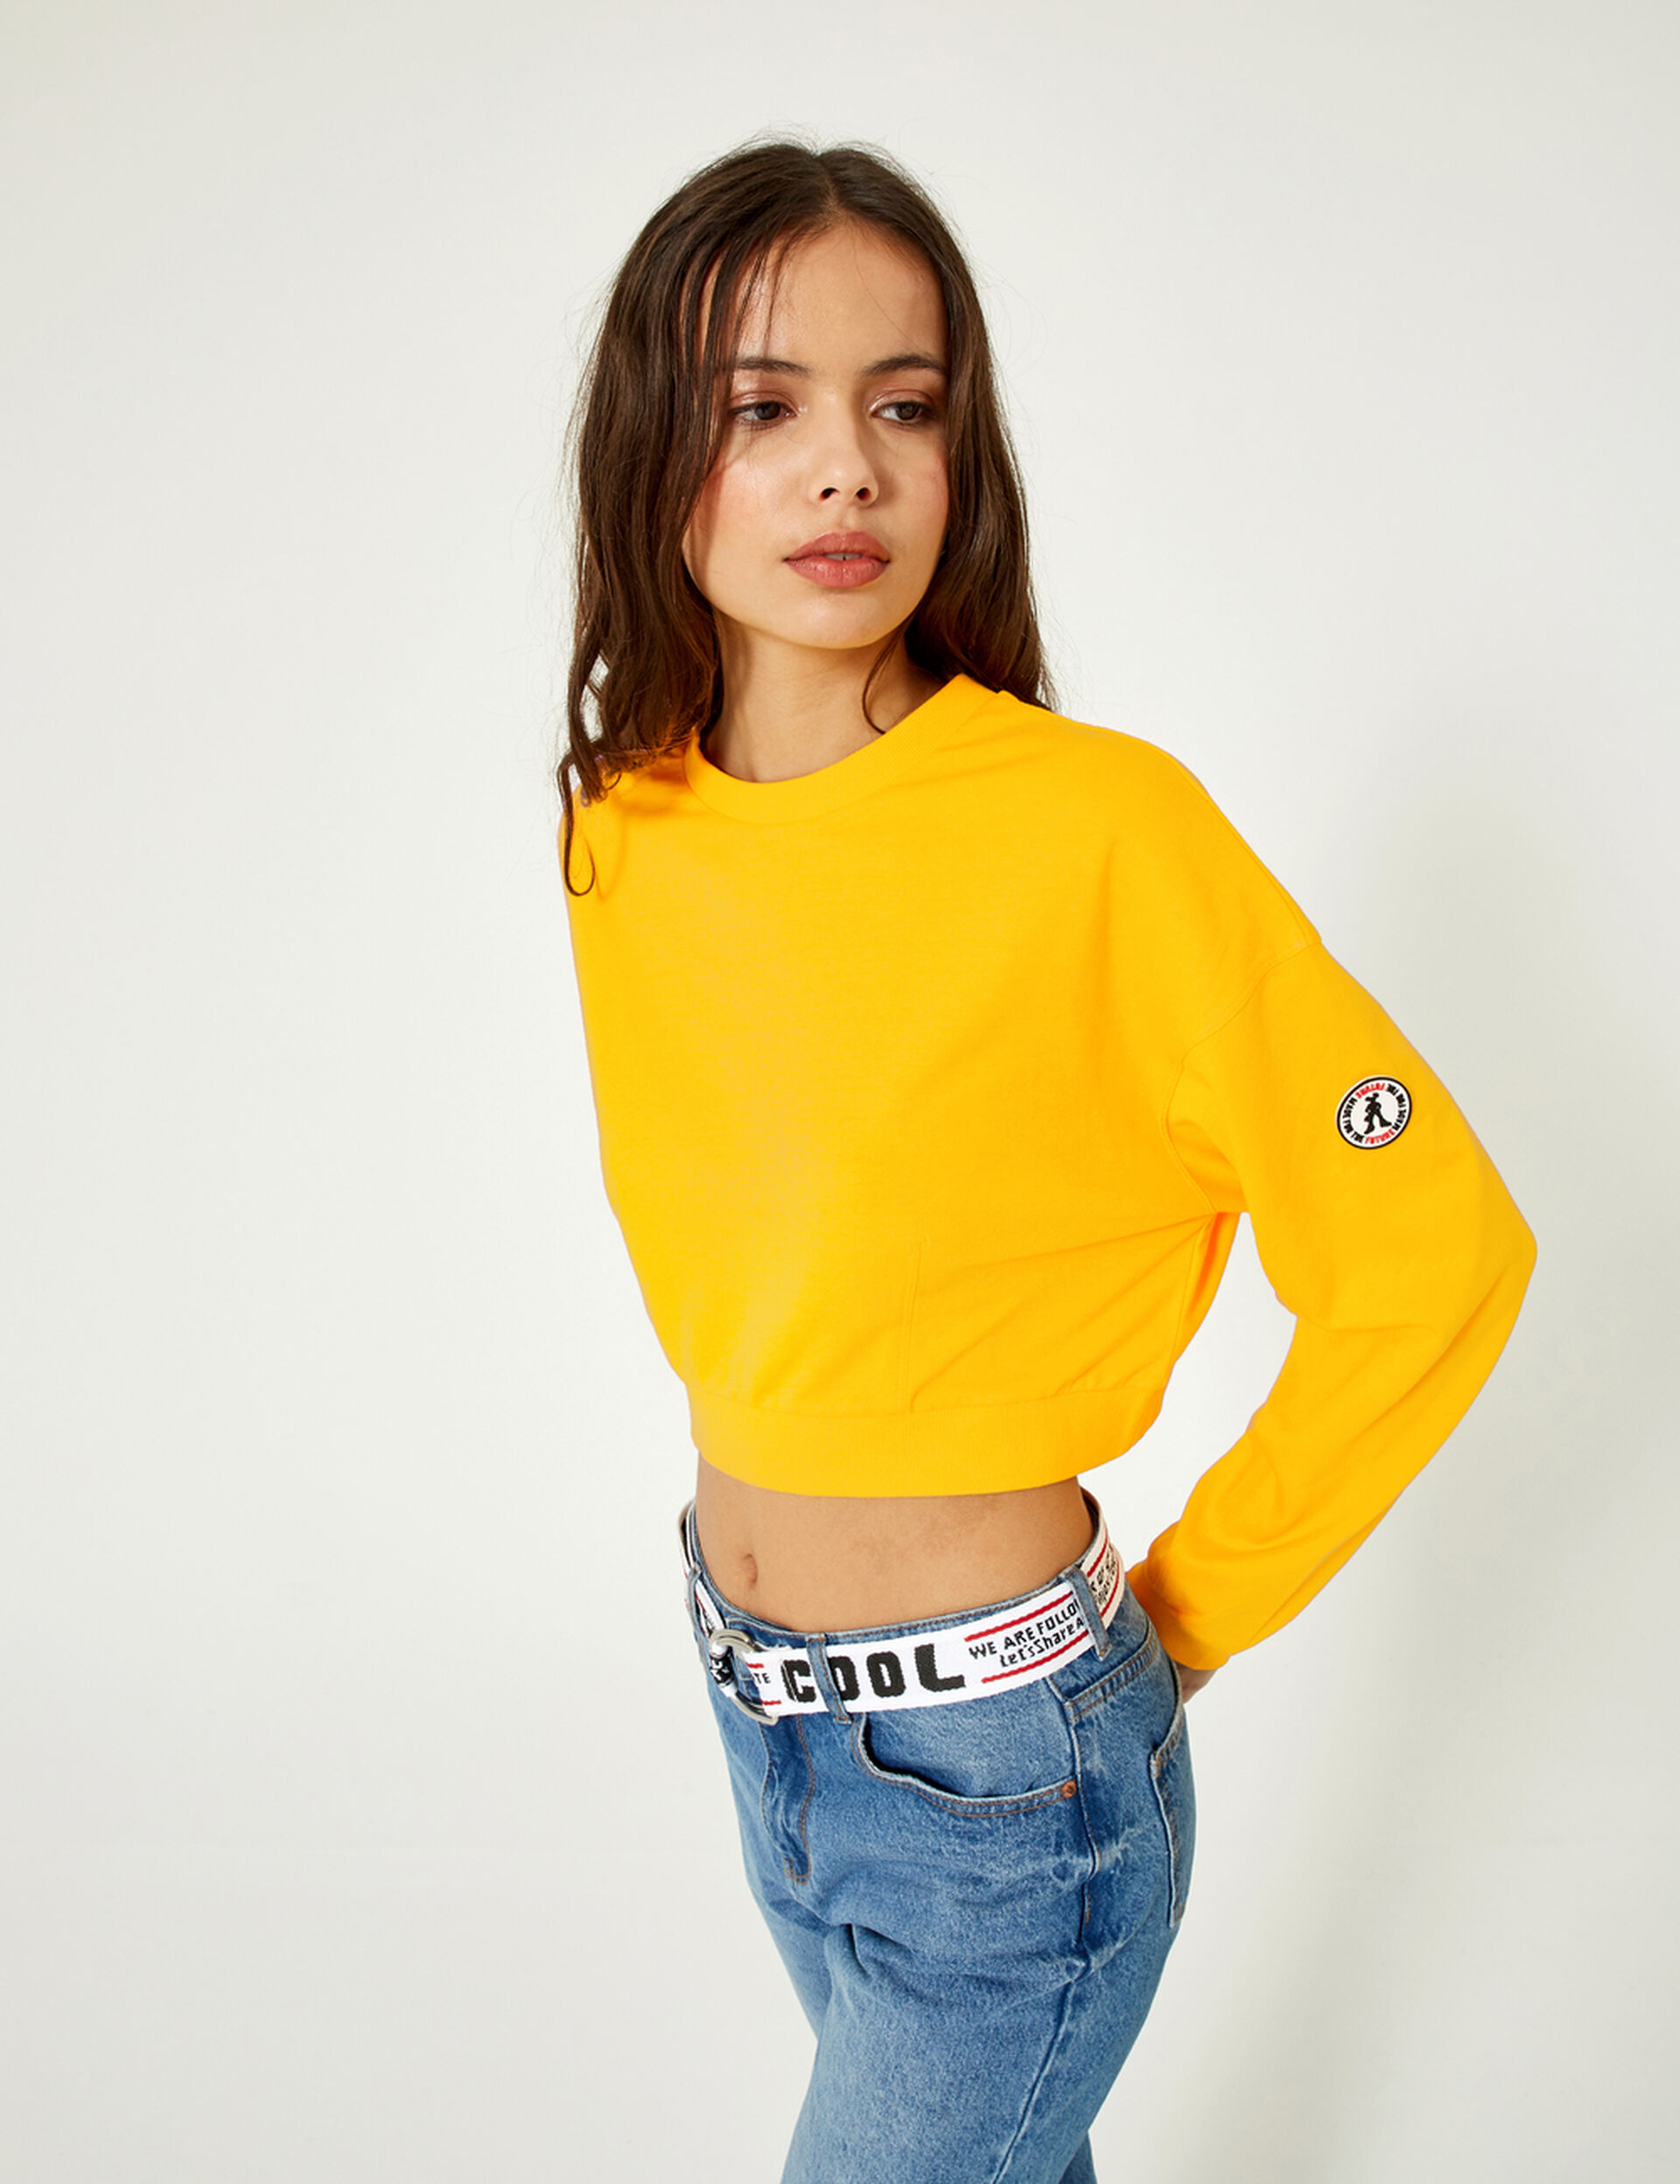 Cropped yellow sweatshirt